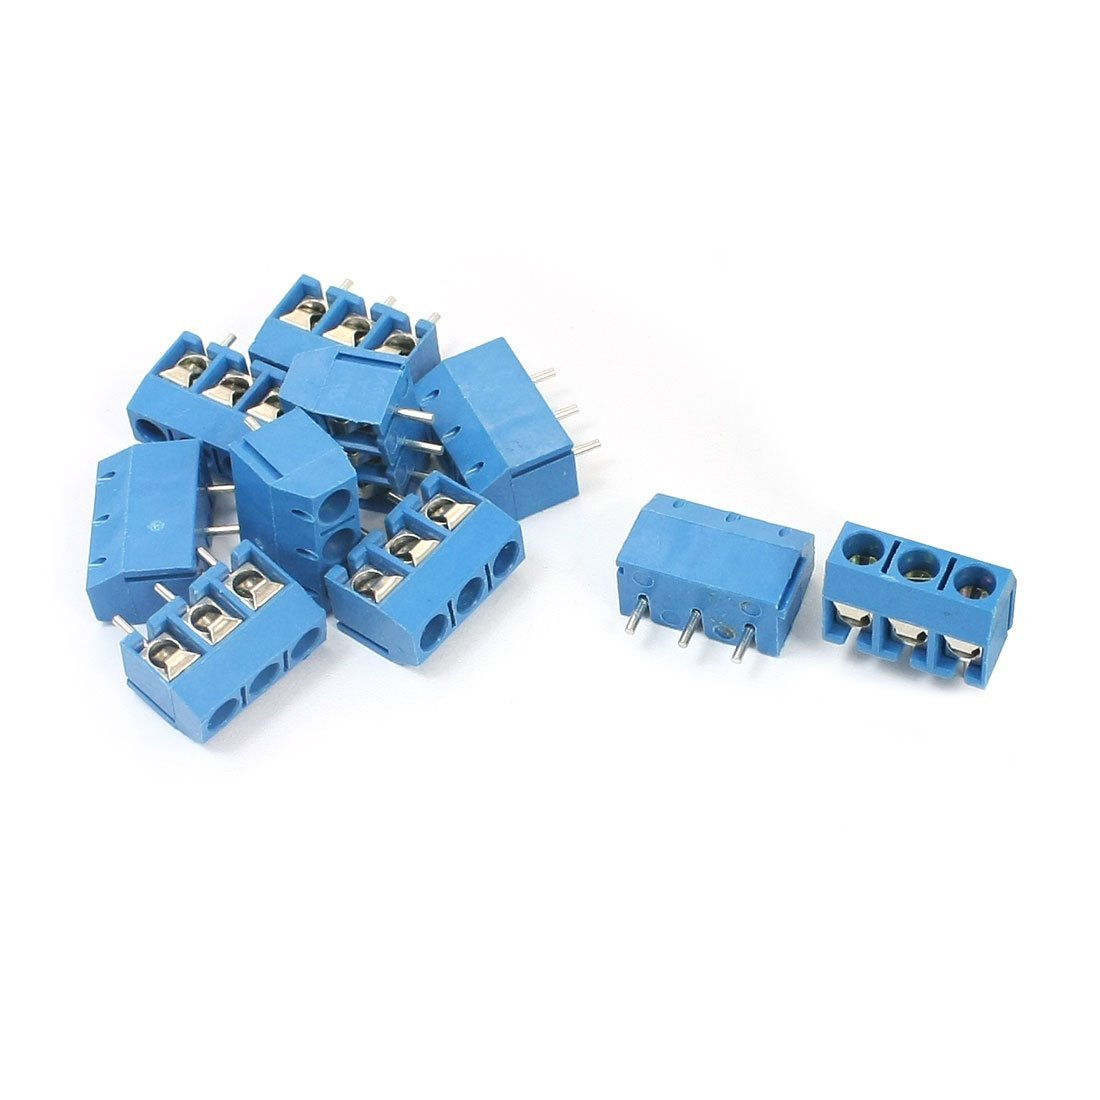 uxcell 10Pcs 5.08mm 3P Pluggable Type Blue Screw Terminal Block 300V 10A